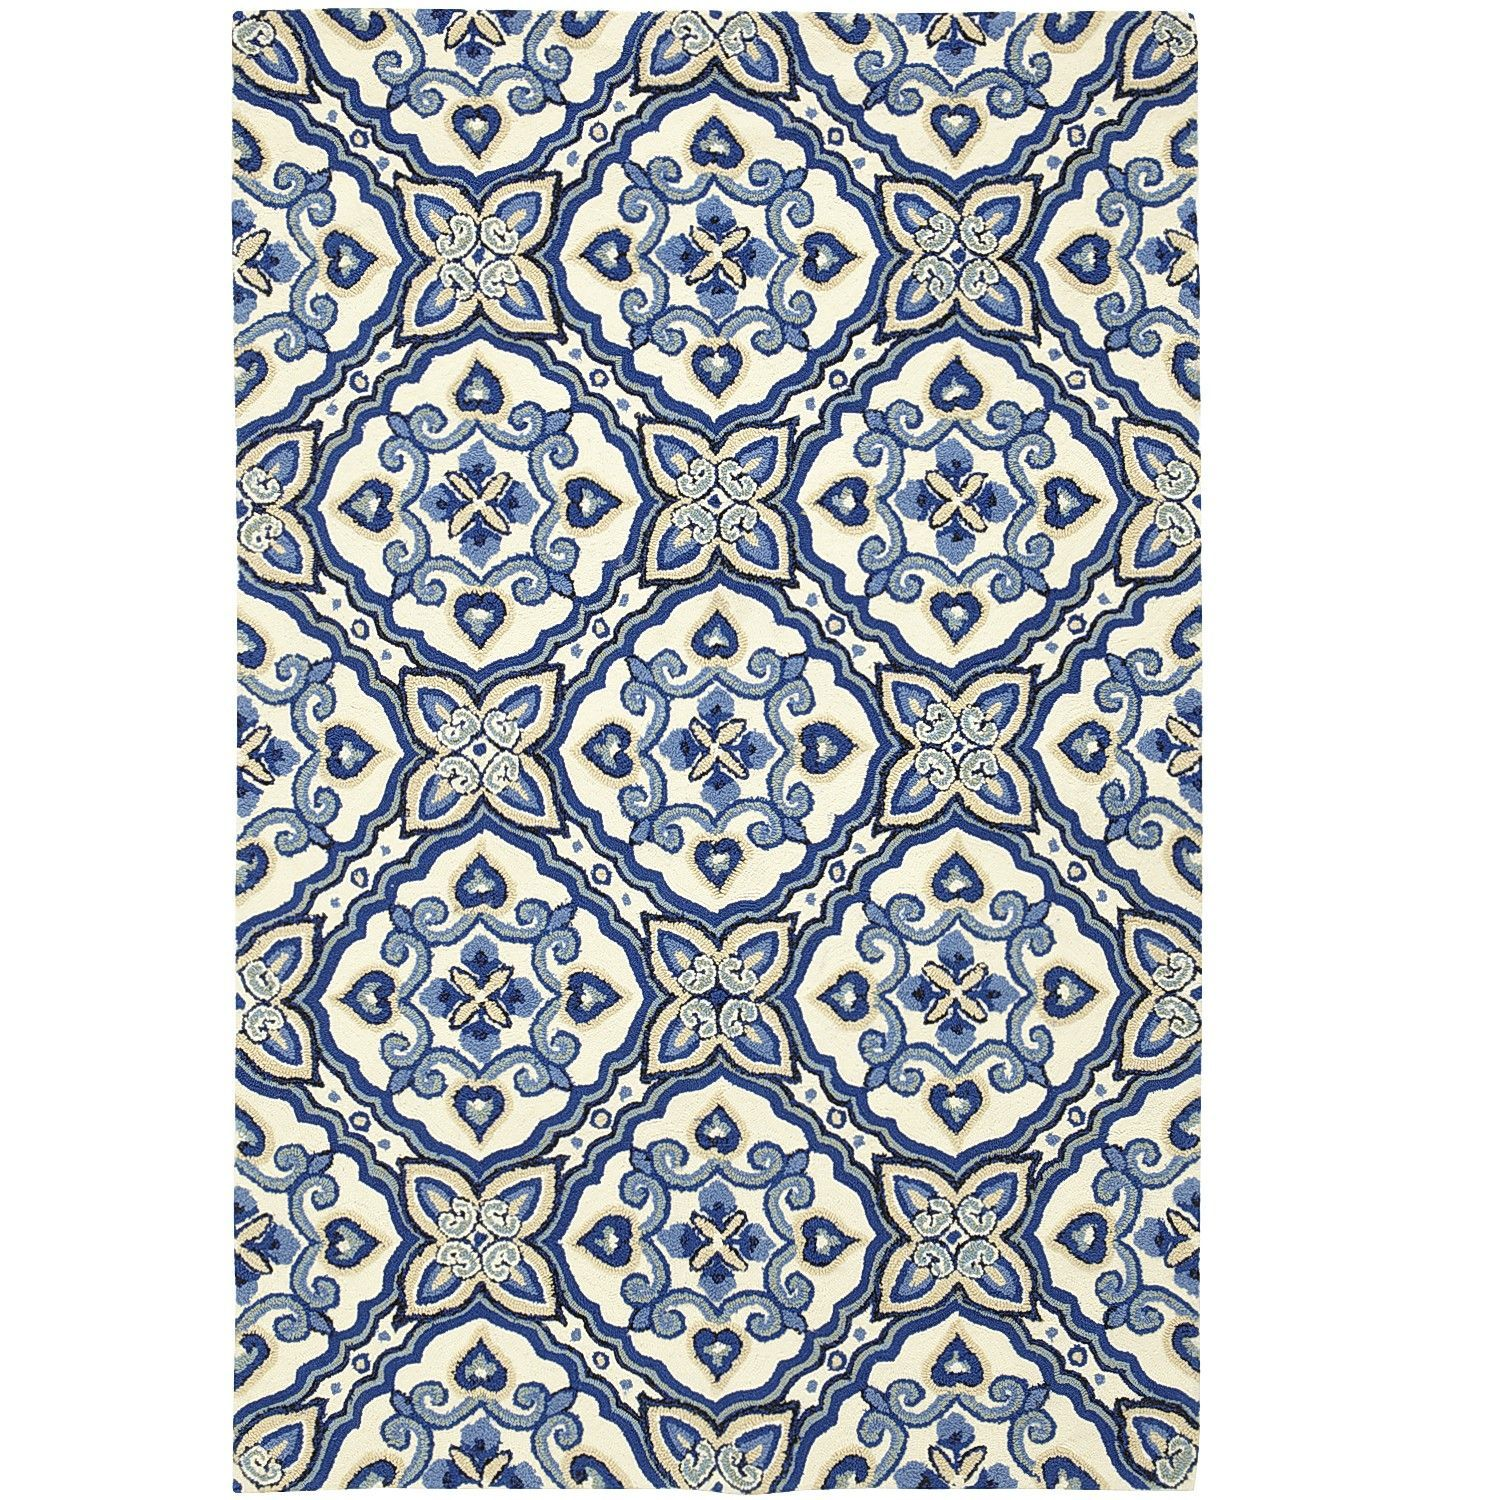 Mediterranean Tile Rug 5x8 sale at Pier e Too busy